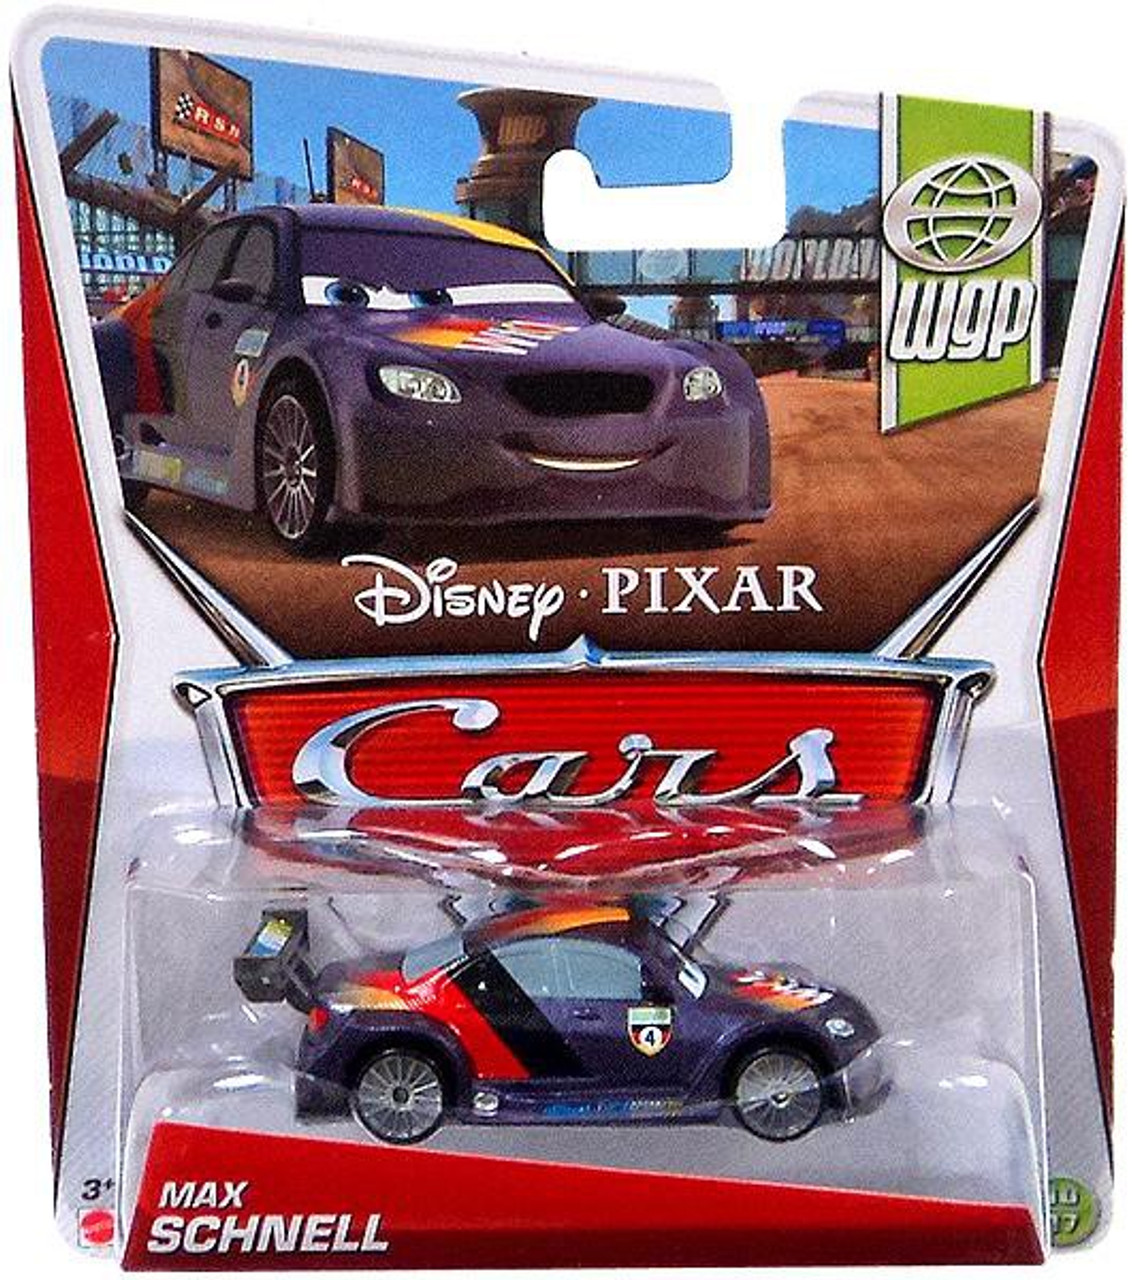 New Disney Pixar CARS 2 ~ MAX SCHNELL with BONUS MICRO DRIFTER Vehicle DieCast